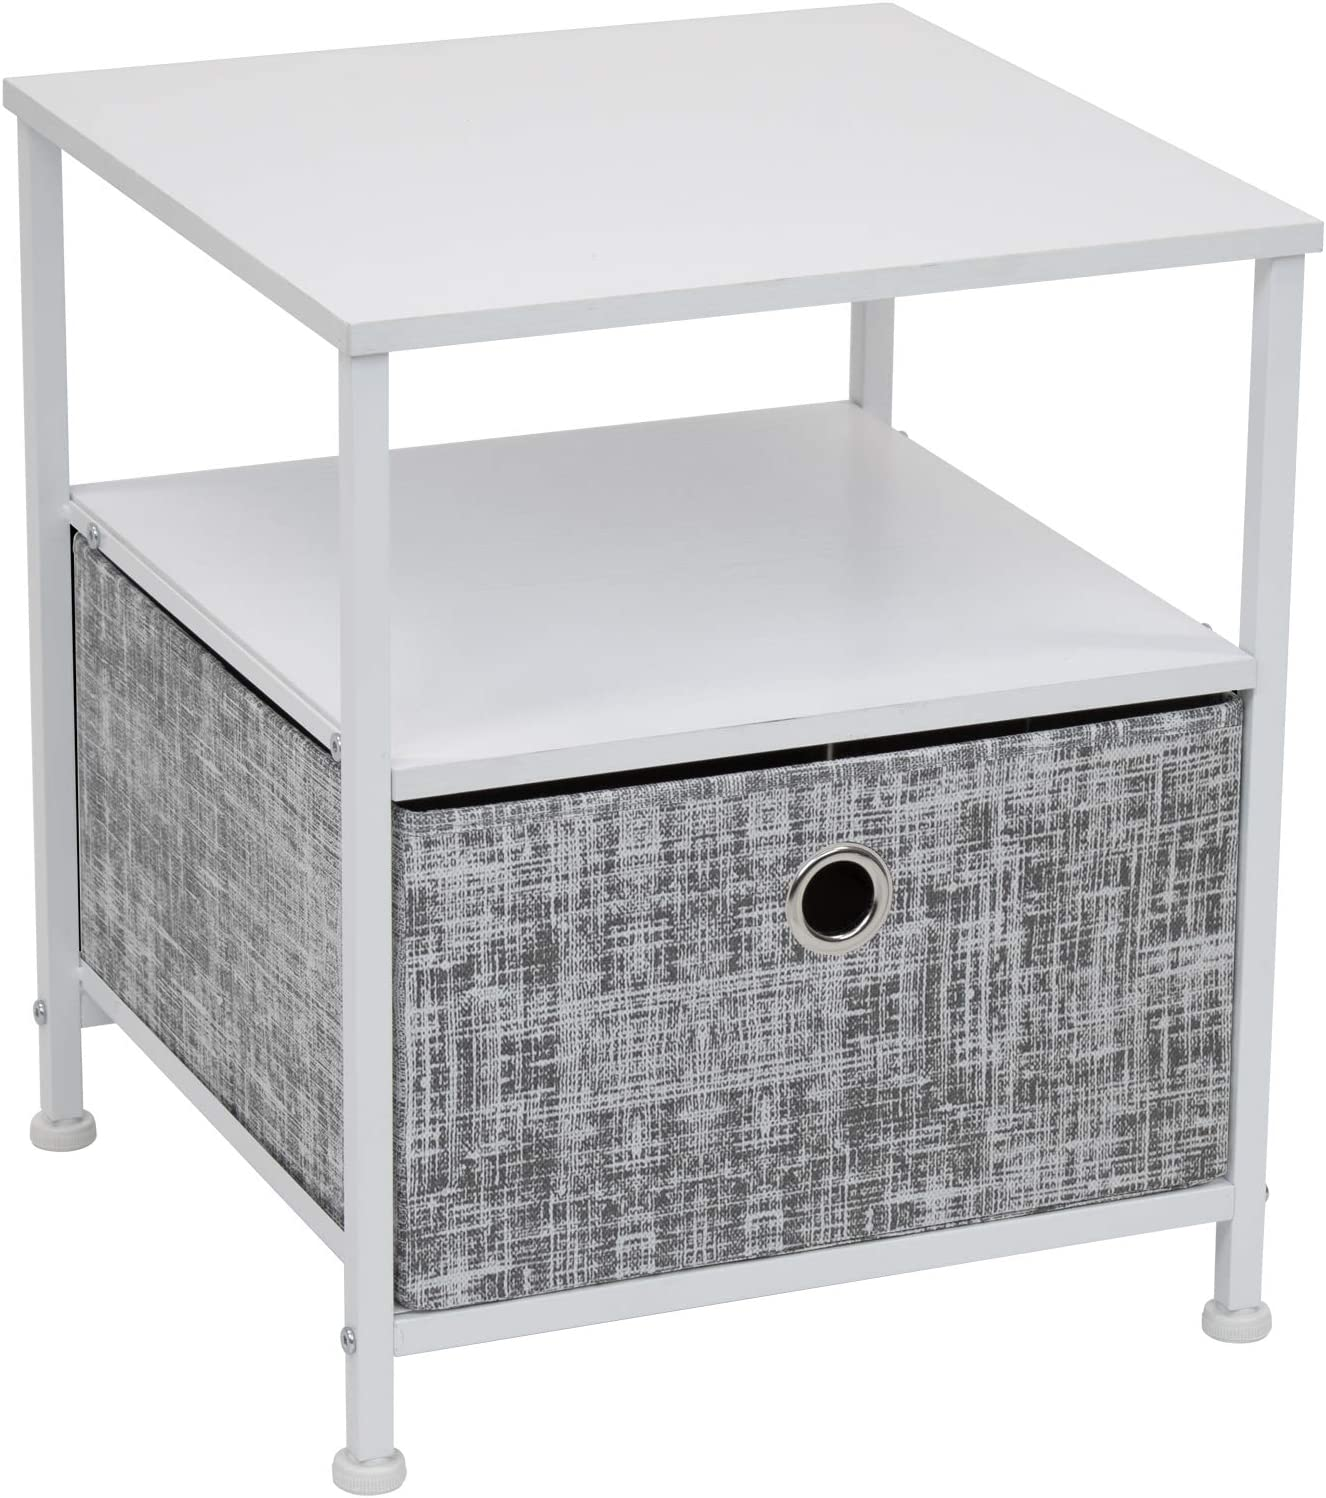 Sorbus Nightstand 1-Drawer Shelf Storage- Bedside Furniture & Accent End Table Chest for Home, Bedroom, Office, College Dorm, Steel Frame, Wood Top, Easy Pull Fabric Bins (Gray/White)